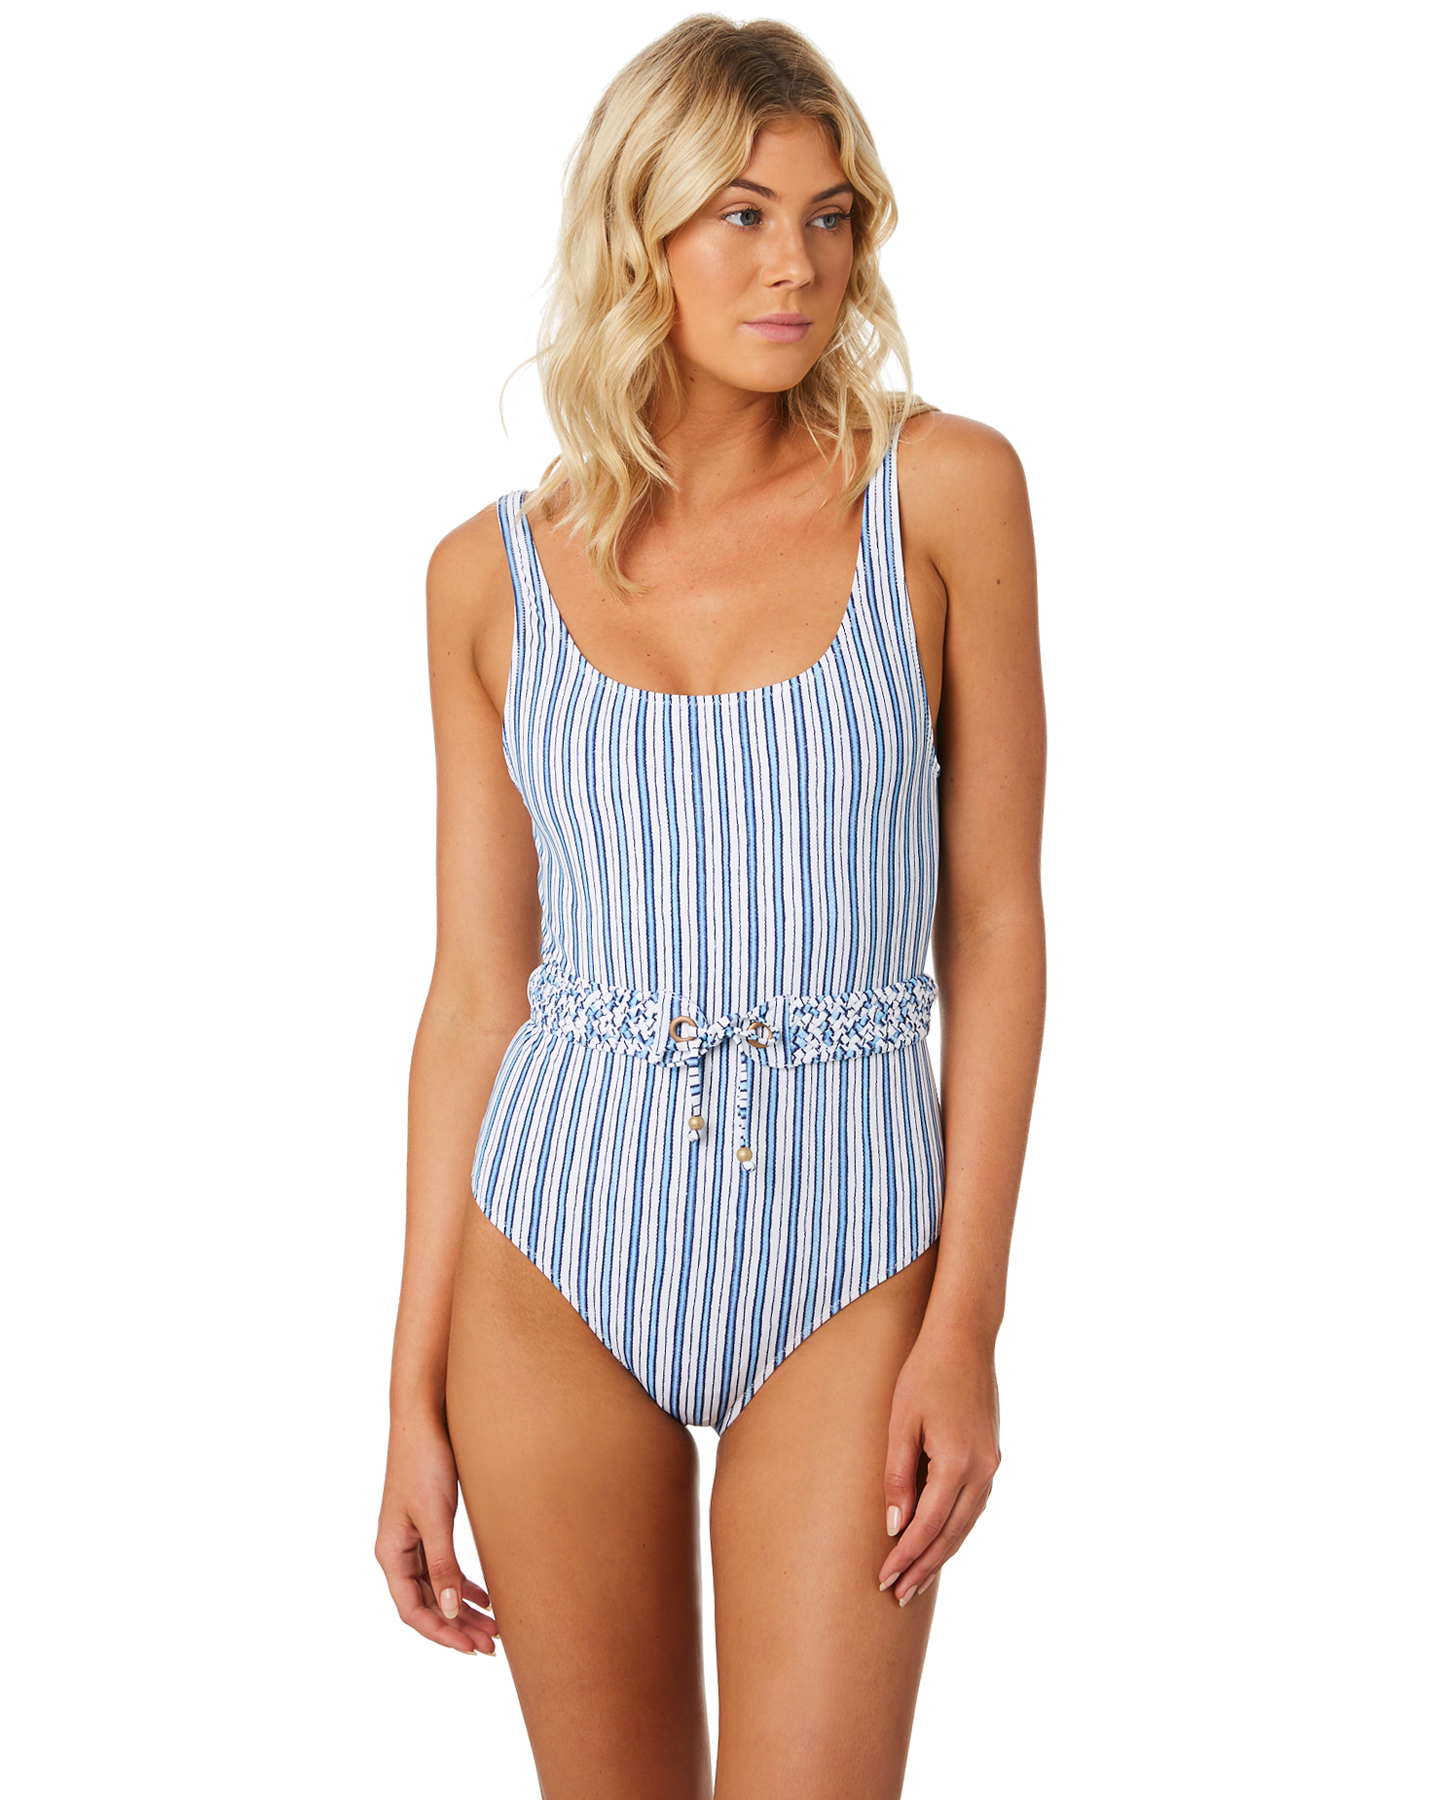 de721dc384aa2 ... Womens swimsuits Size 14. Tigerlily Tigerlily Sanaz One Piece Patchwork  Tigerlily Sanaz One Piece Patchwork